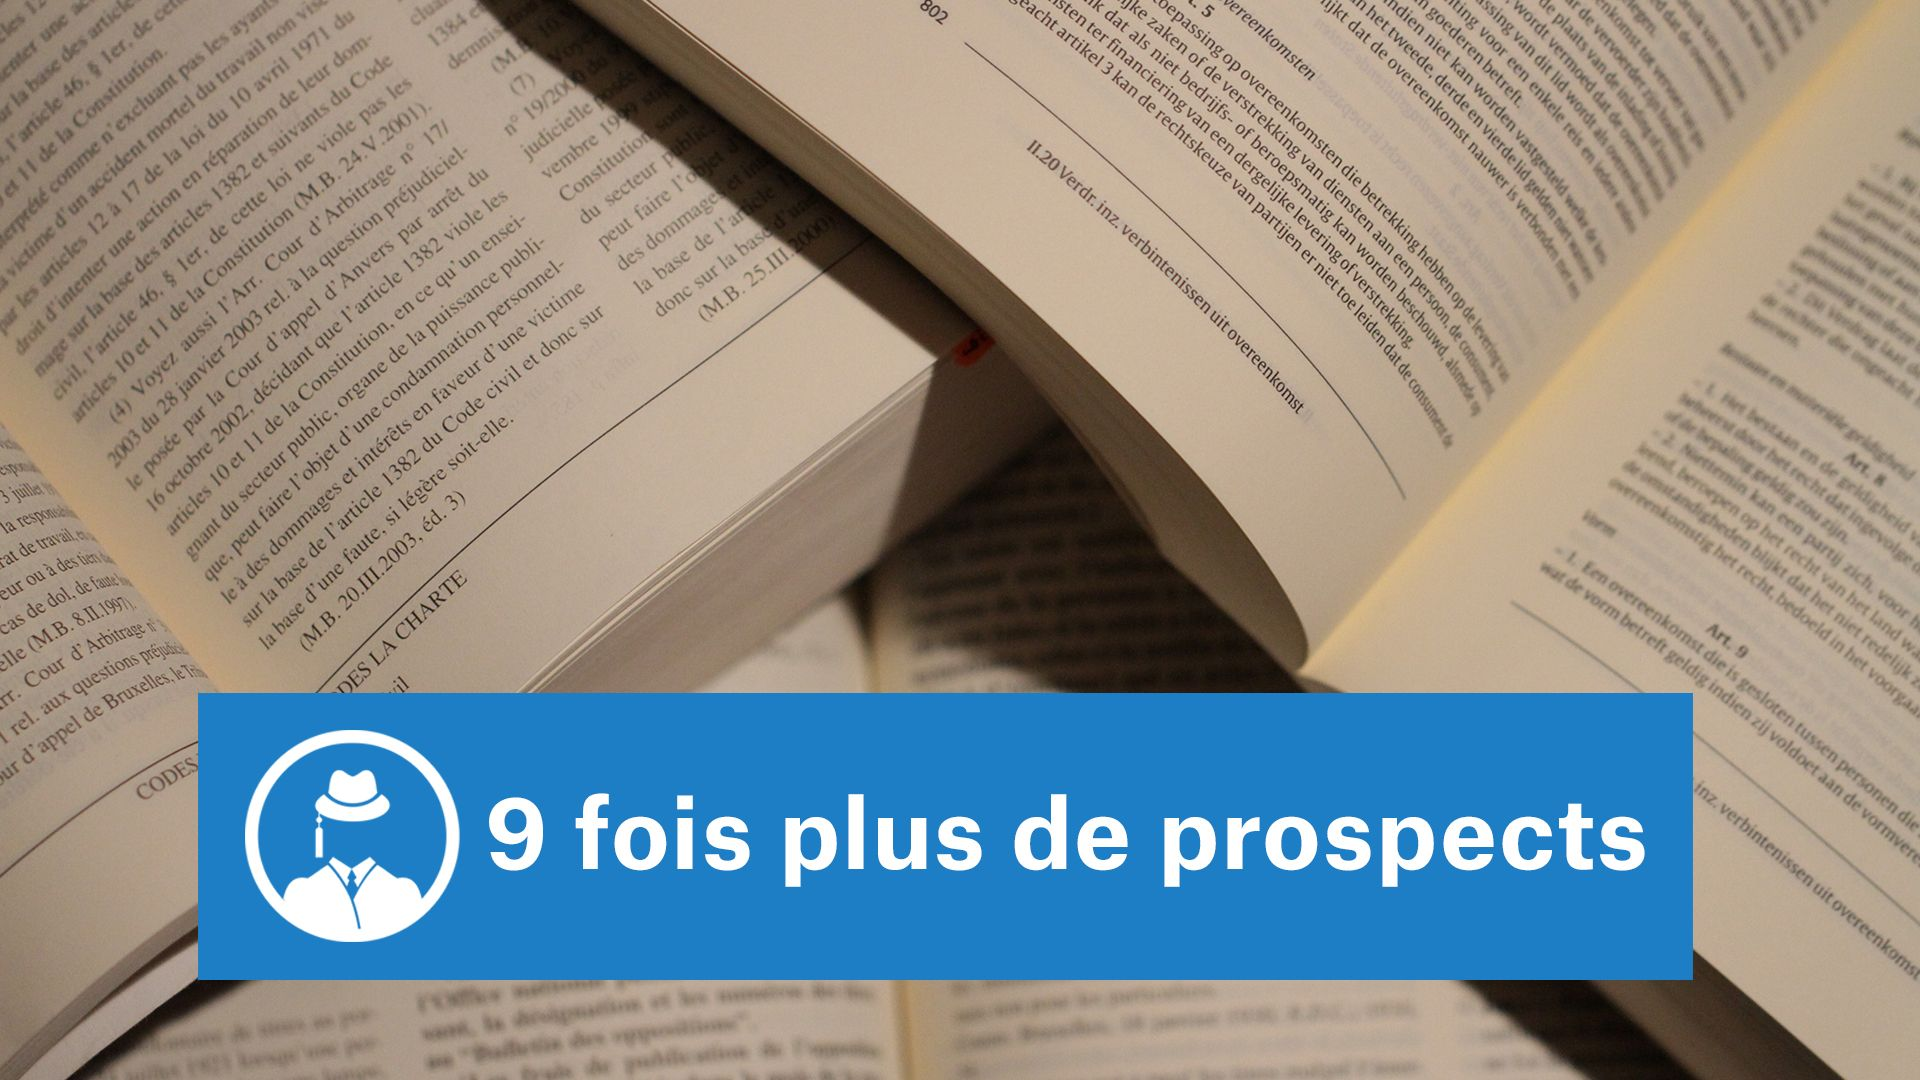 9 fois plus de prospects #GrowthHacking #WebMarketing #FormationGrowthHacking #CentreDeFormationFrance #TunnelAARRR #AARRR #SocialMedia #CommunityManagement #SEO #MarketingDigital #SiteWeb #SEO